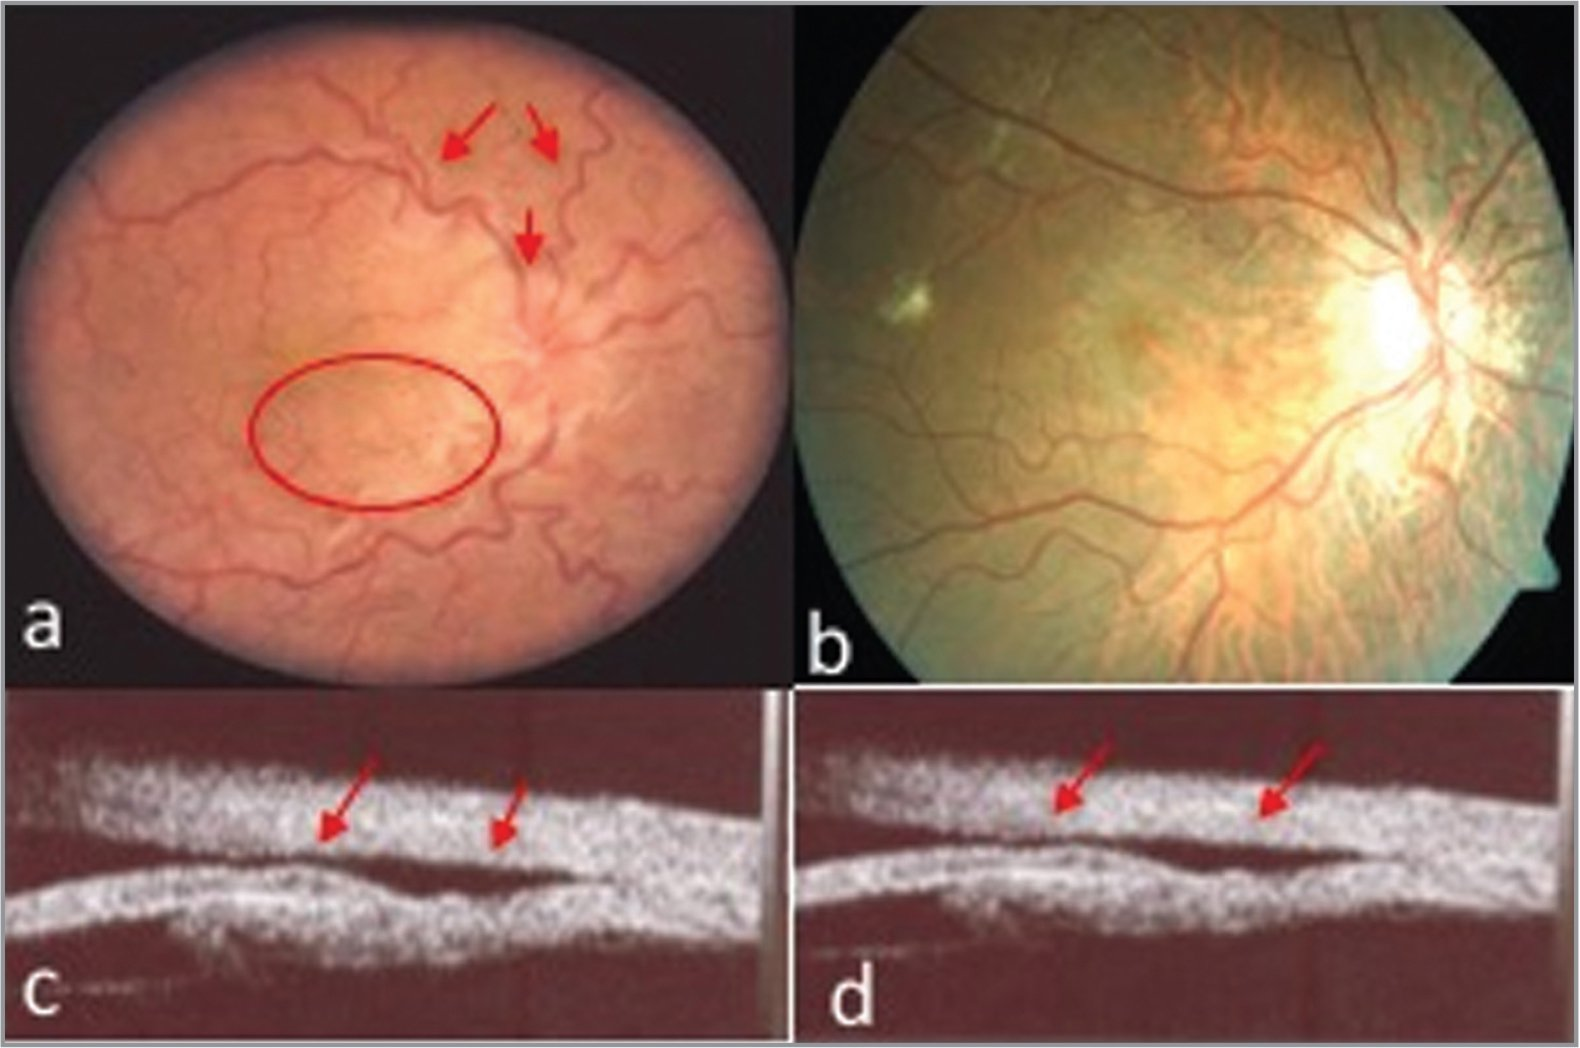 (a, c) Preoperative images. (d, b) Postoperative. Color retinography. (a) Shows hypotonic maculopathy, disc swelling, and vascular tortuosity. (b) The absence of this, signs of hypotony. (c, d) Representative images of cyclodialysis cleft and ciliochoroidal detachment.